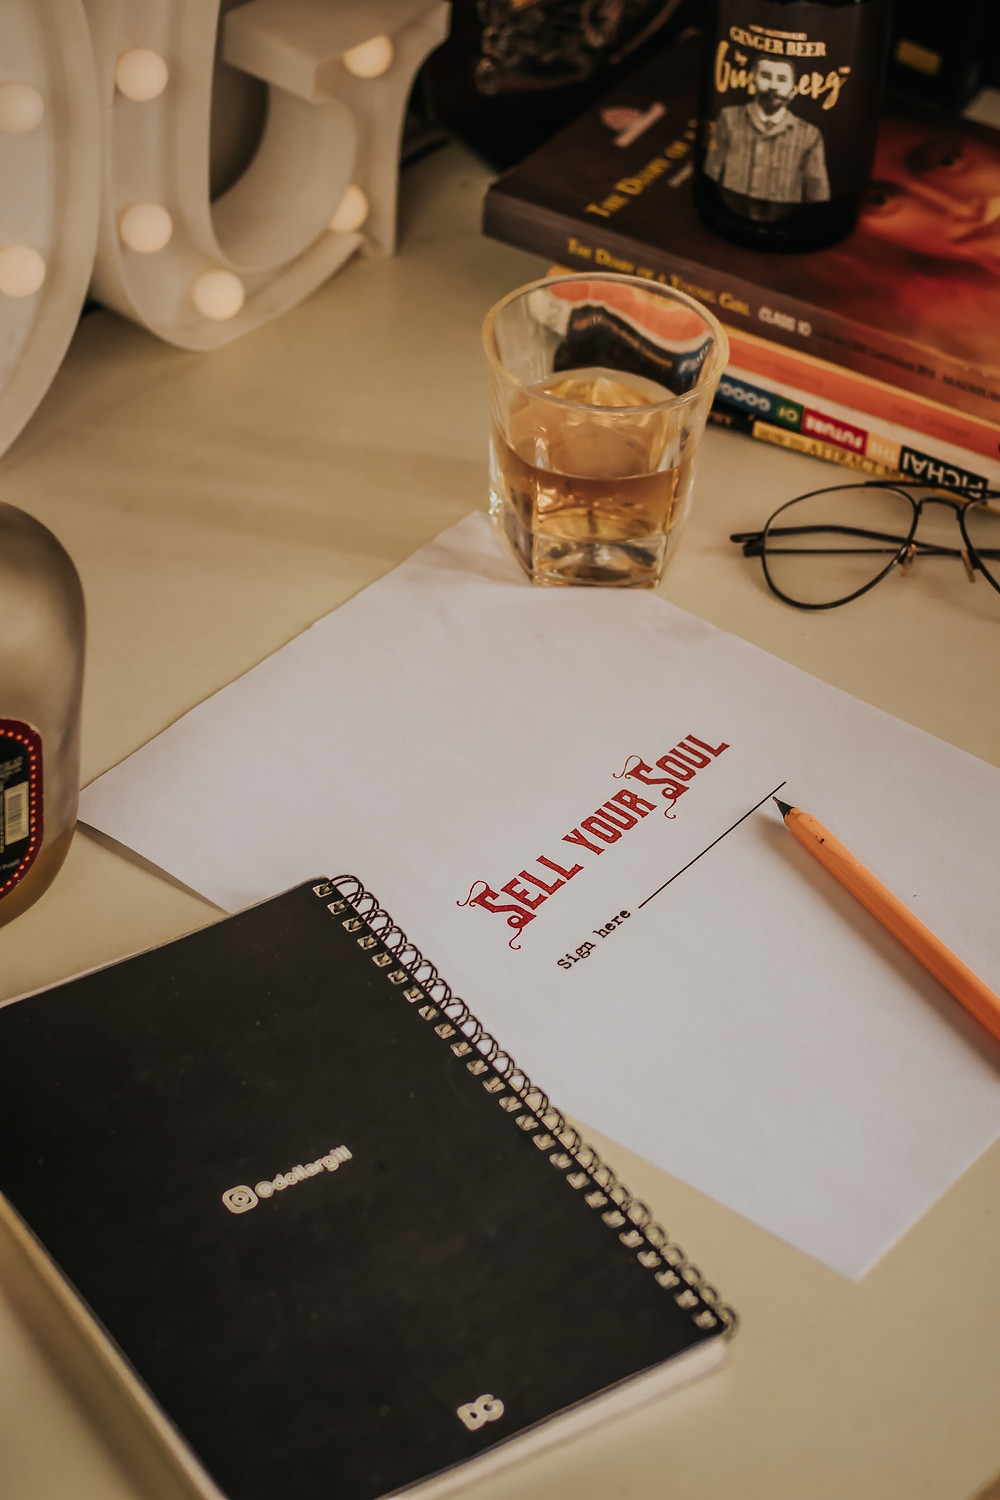 A glass of alcohol, spectacles, a notepad and a paper asking to sell your soul